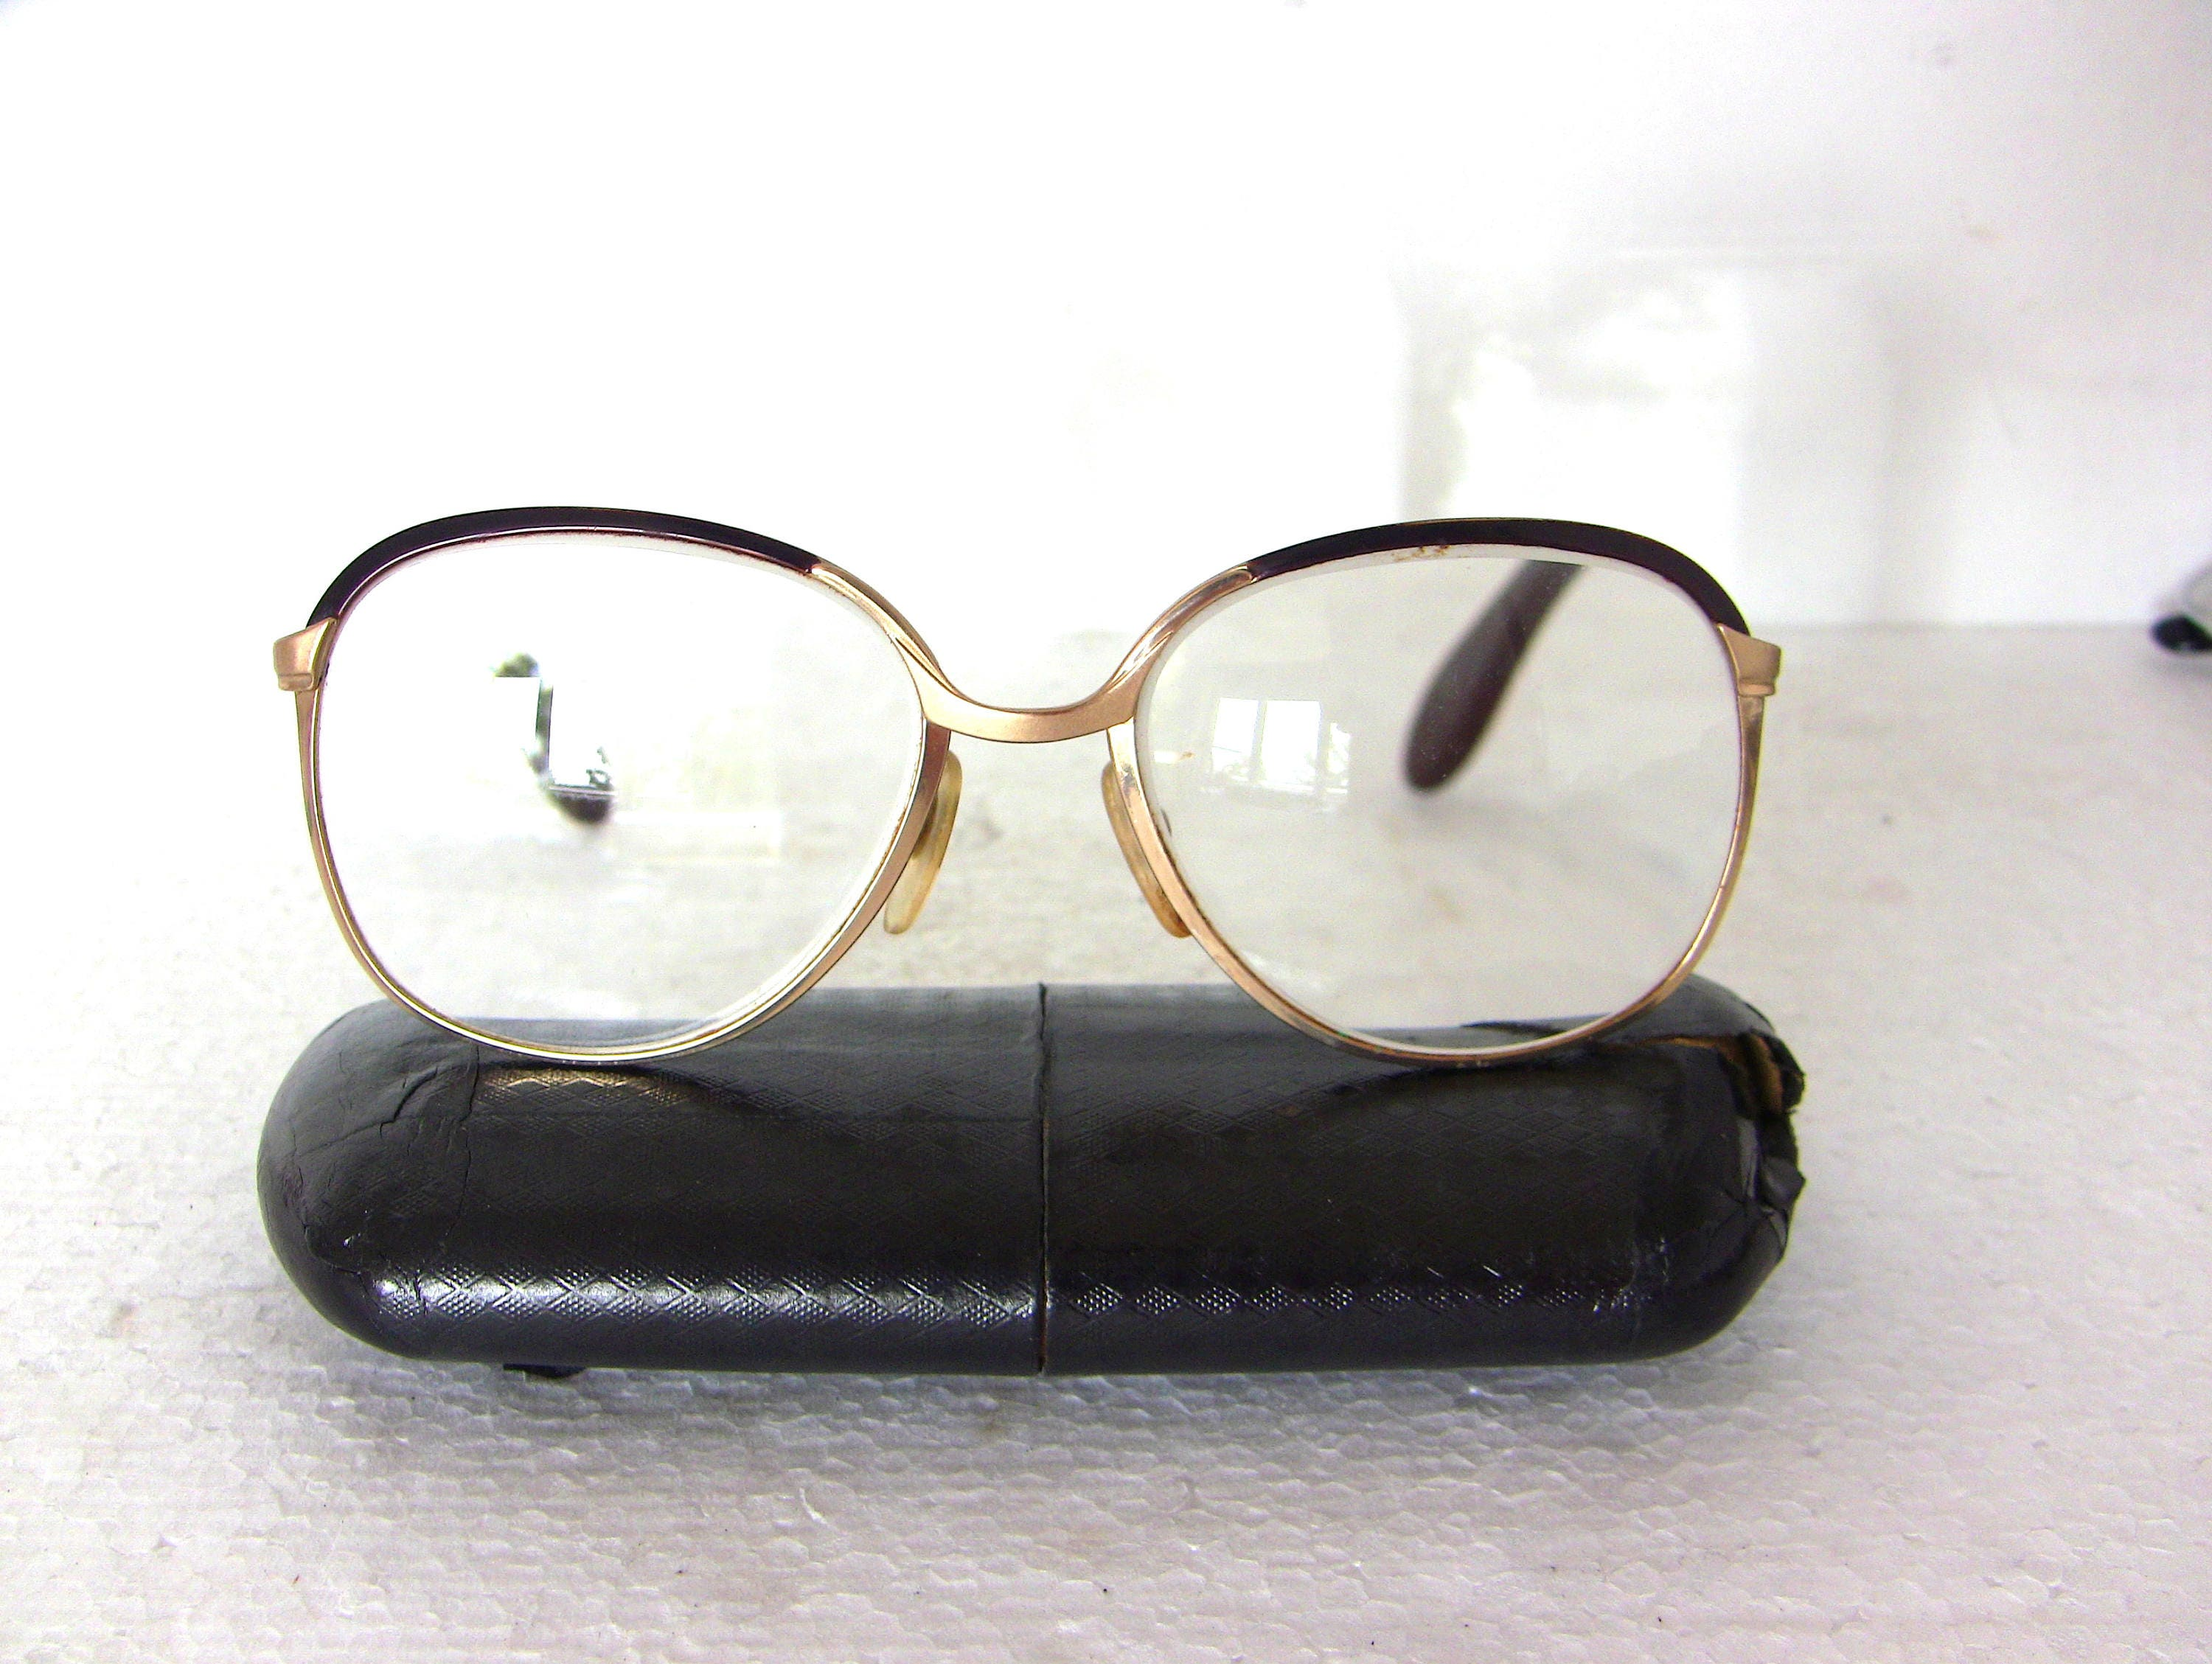 68ad9587cb71 Optura Round Vintage 80 s Eyeglasses Gold Plated Medium Size Frame FREE  SHIPPING Women s Prescription Glasses Rx